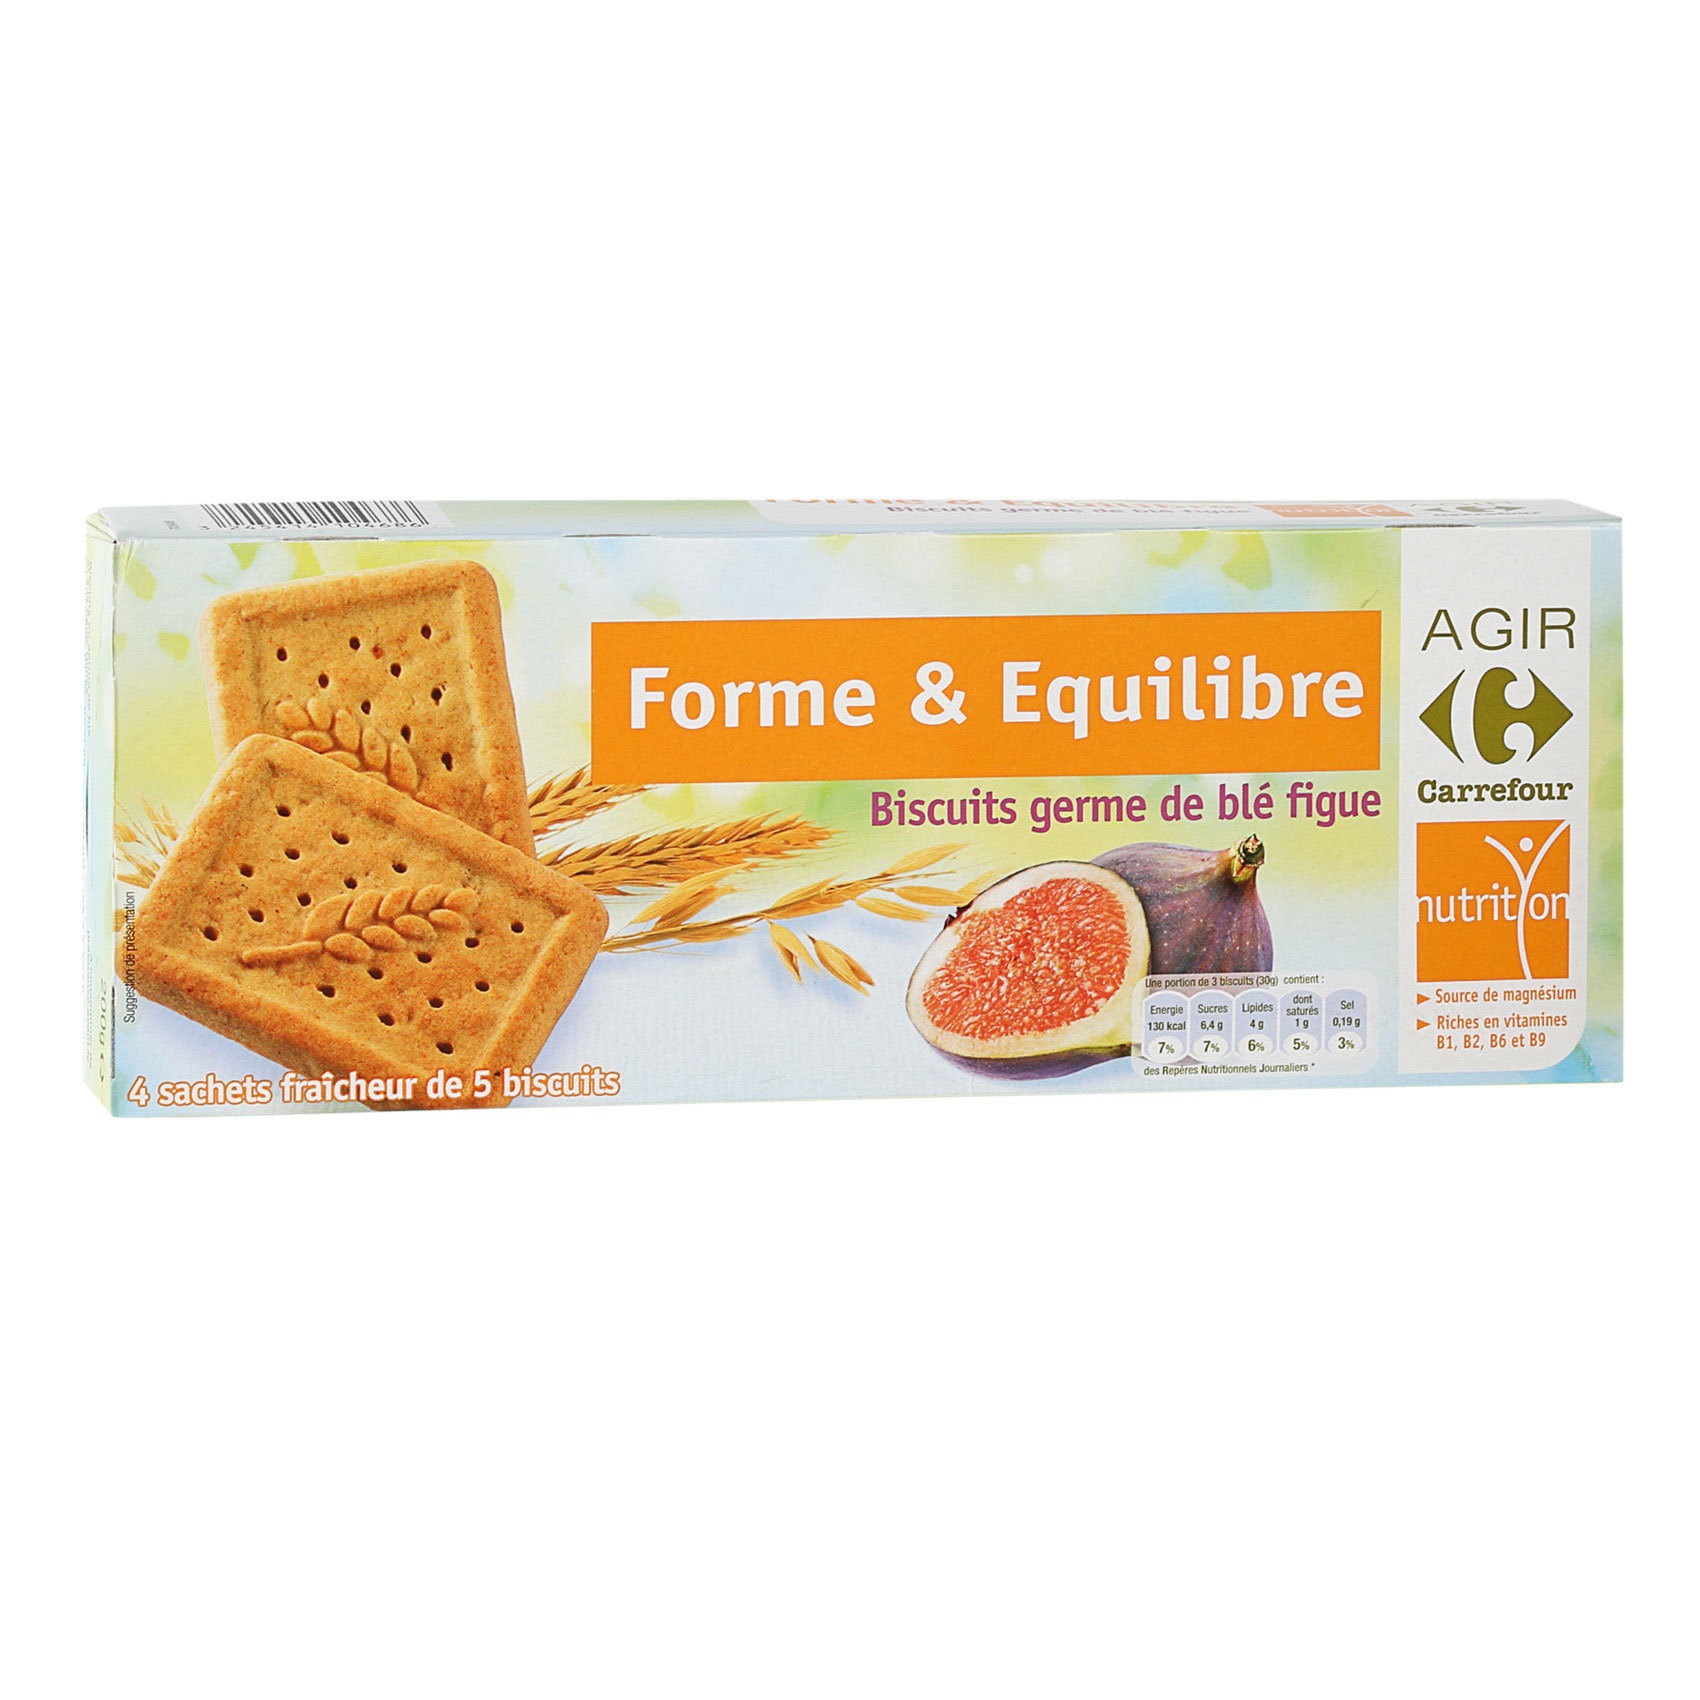 CRF WHEAT GERM & FIG BISCUITS 200G